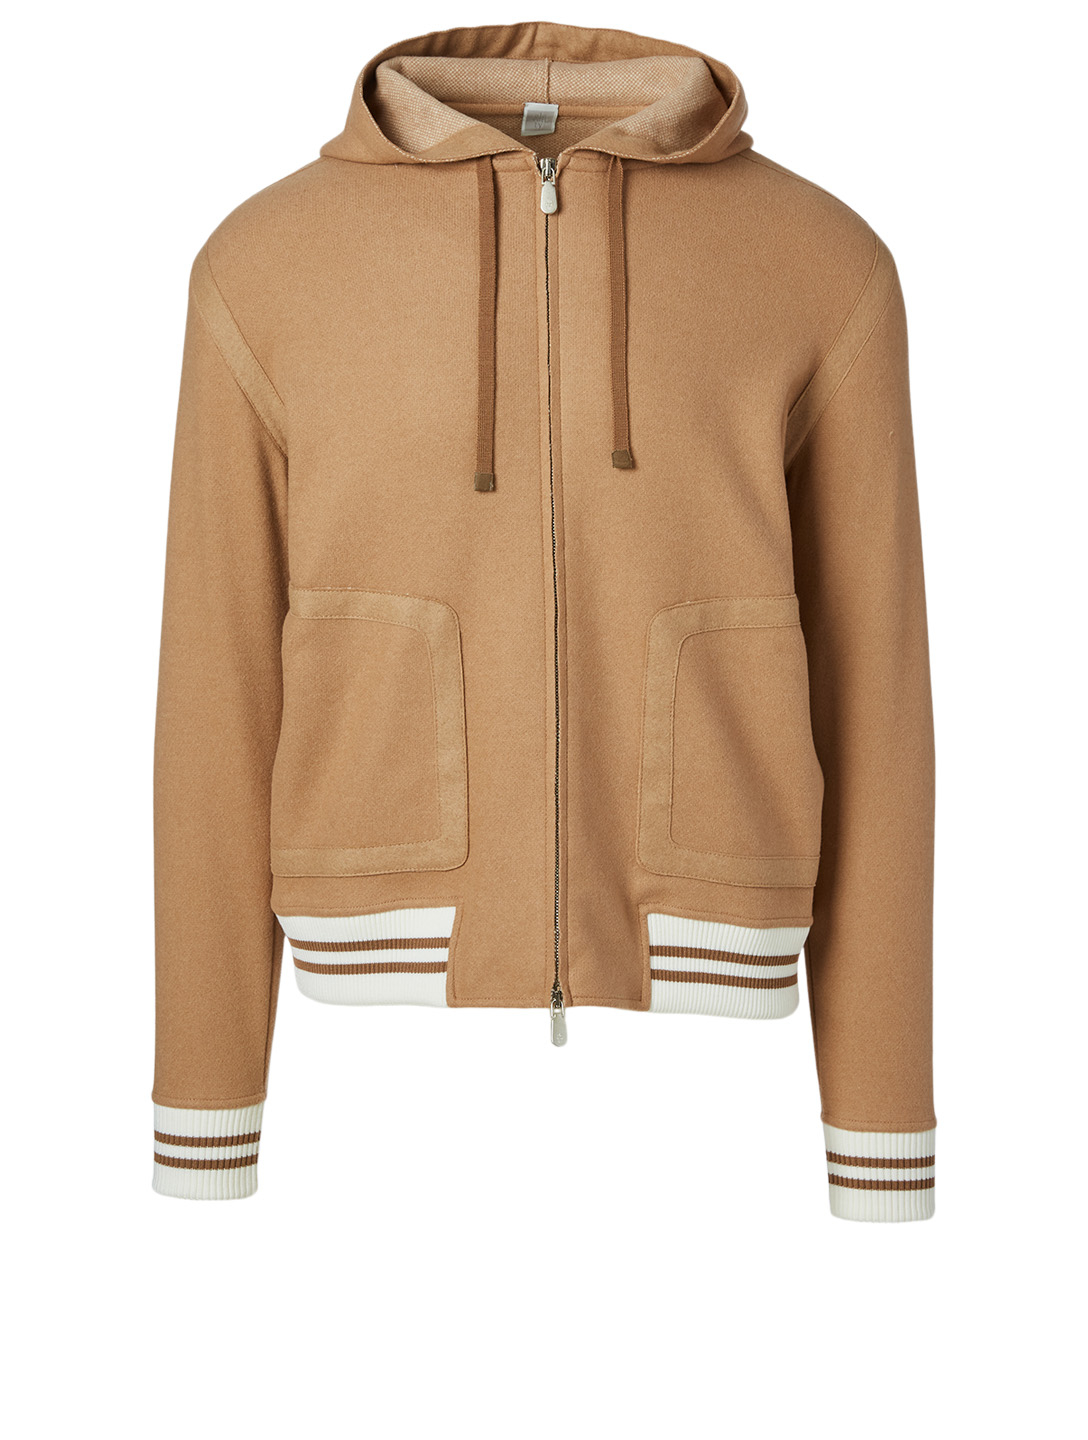 ELEVENTY Wool Zip Jacket With Hood Men's Beige